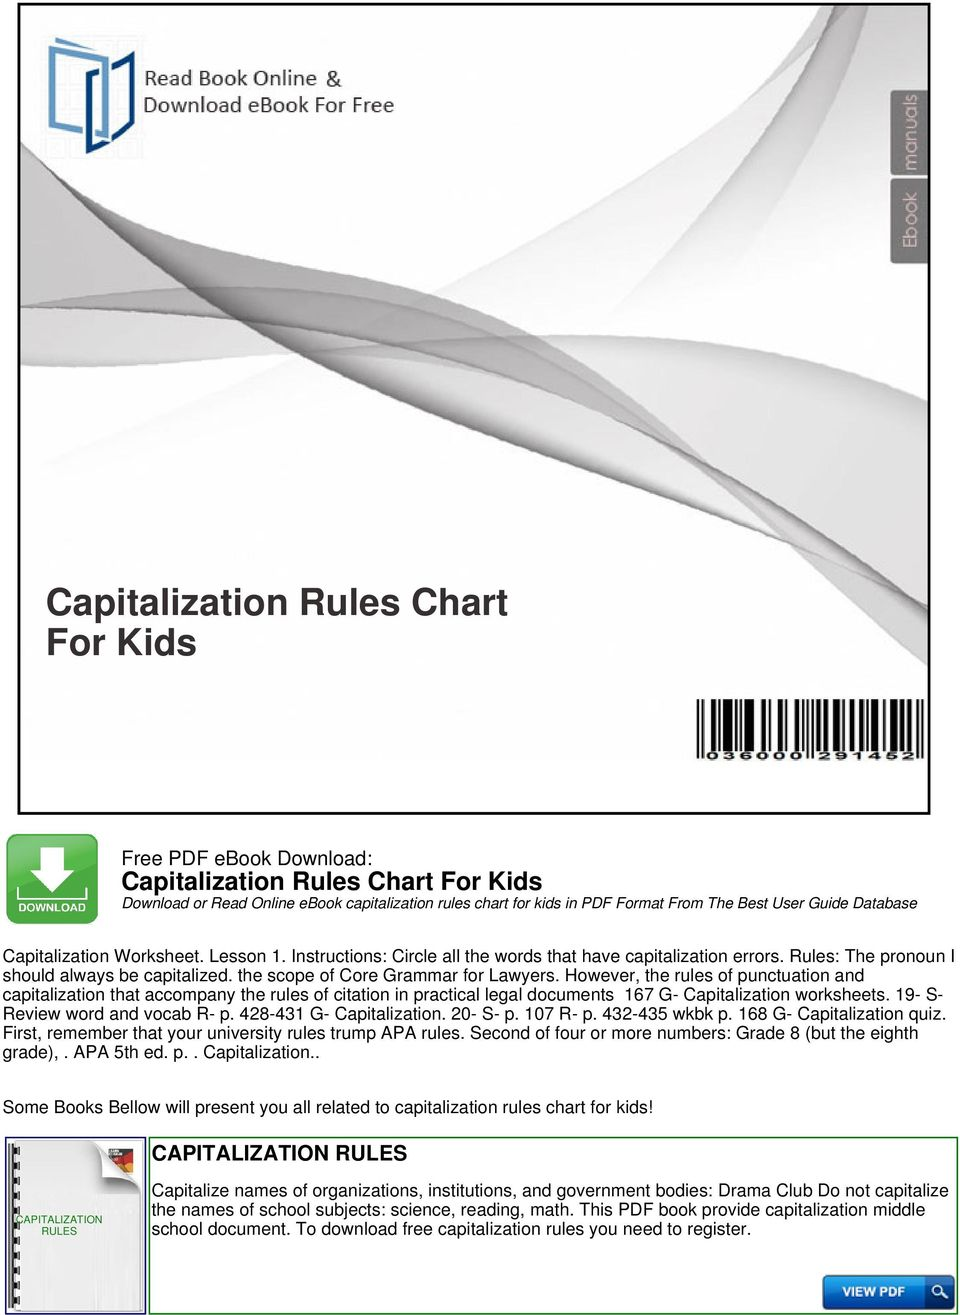 However, the rules of punctuation and capitalization that accompany the rules of citation in practical legal documents 167 G- worksheets. 19- S- Review word and vocab R- p. 428-431 G-. 20- S- p.